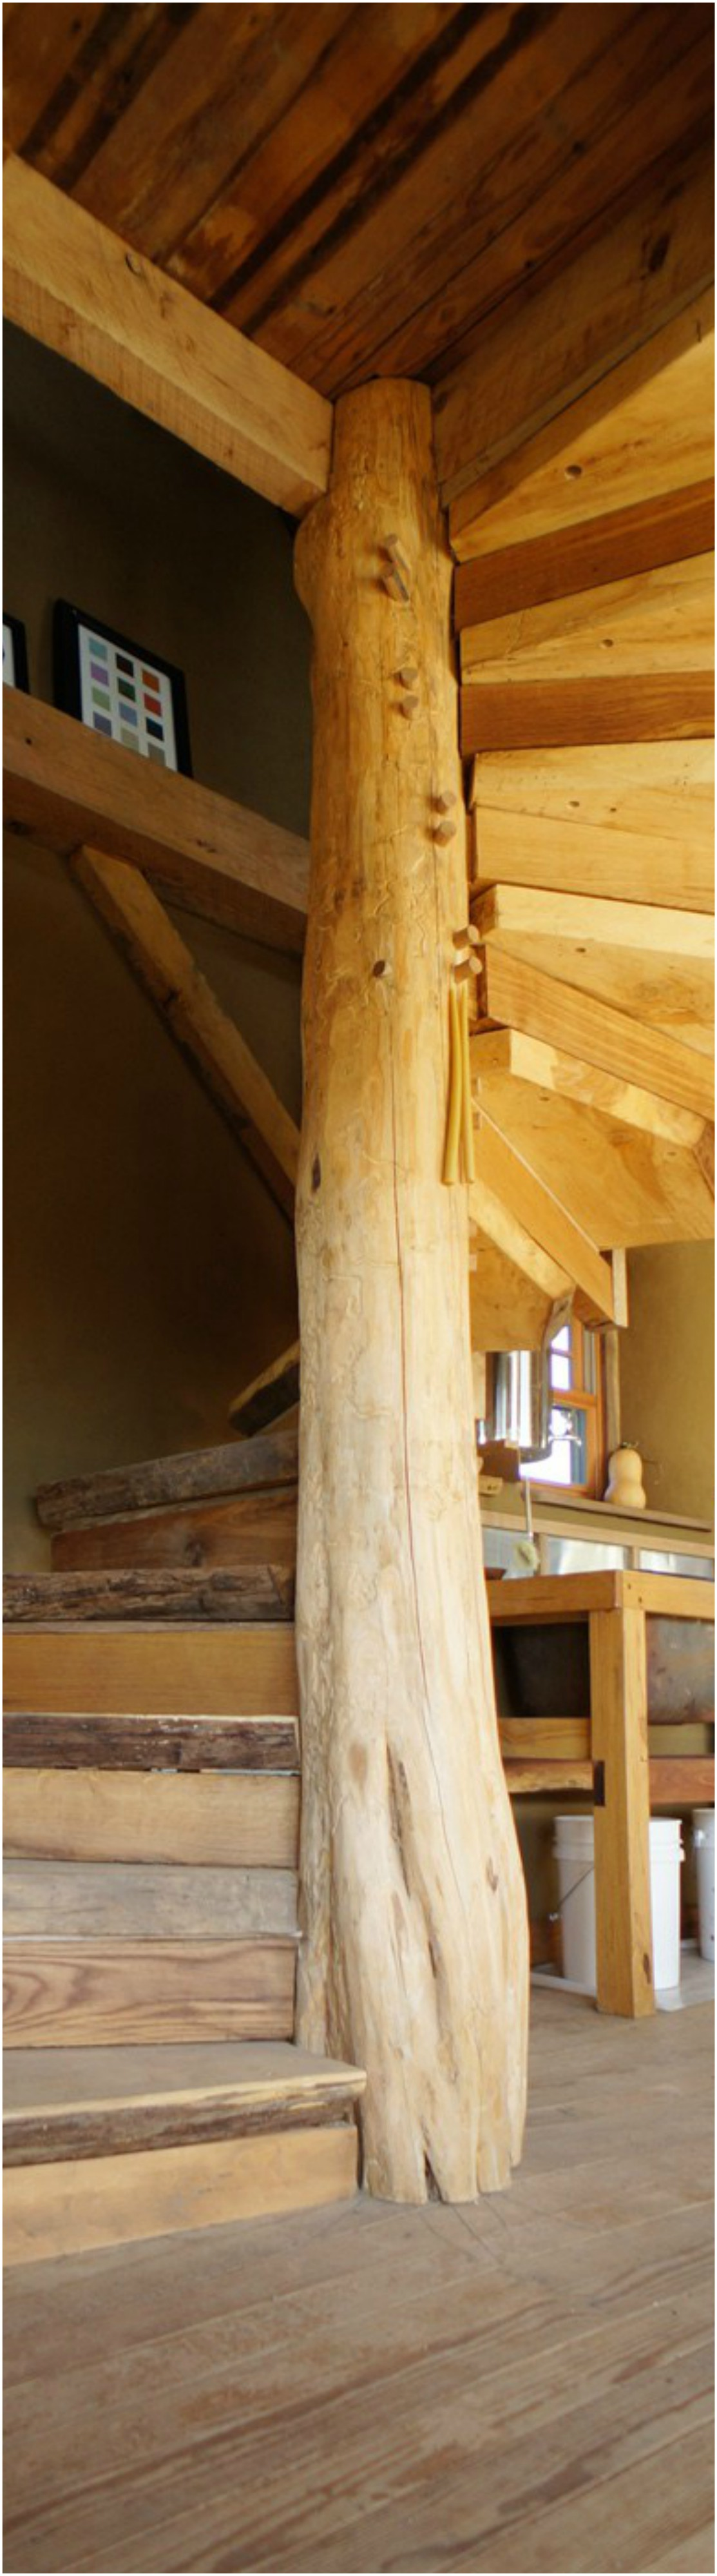 Wooden Spiral Staircase (25)